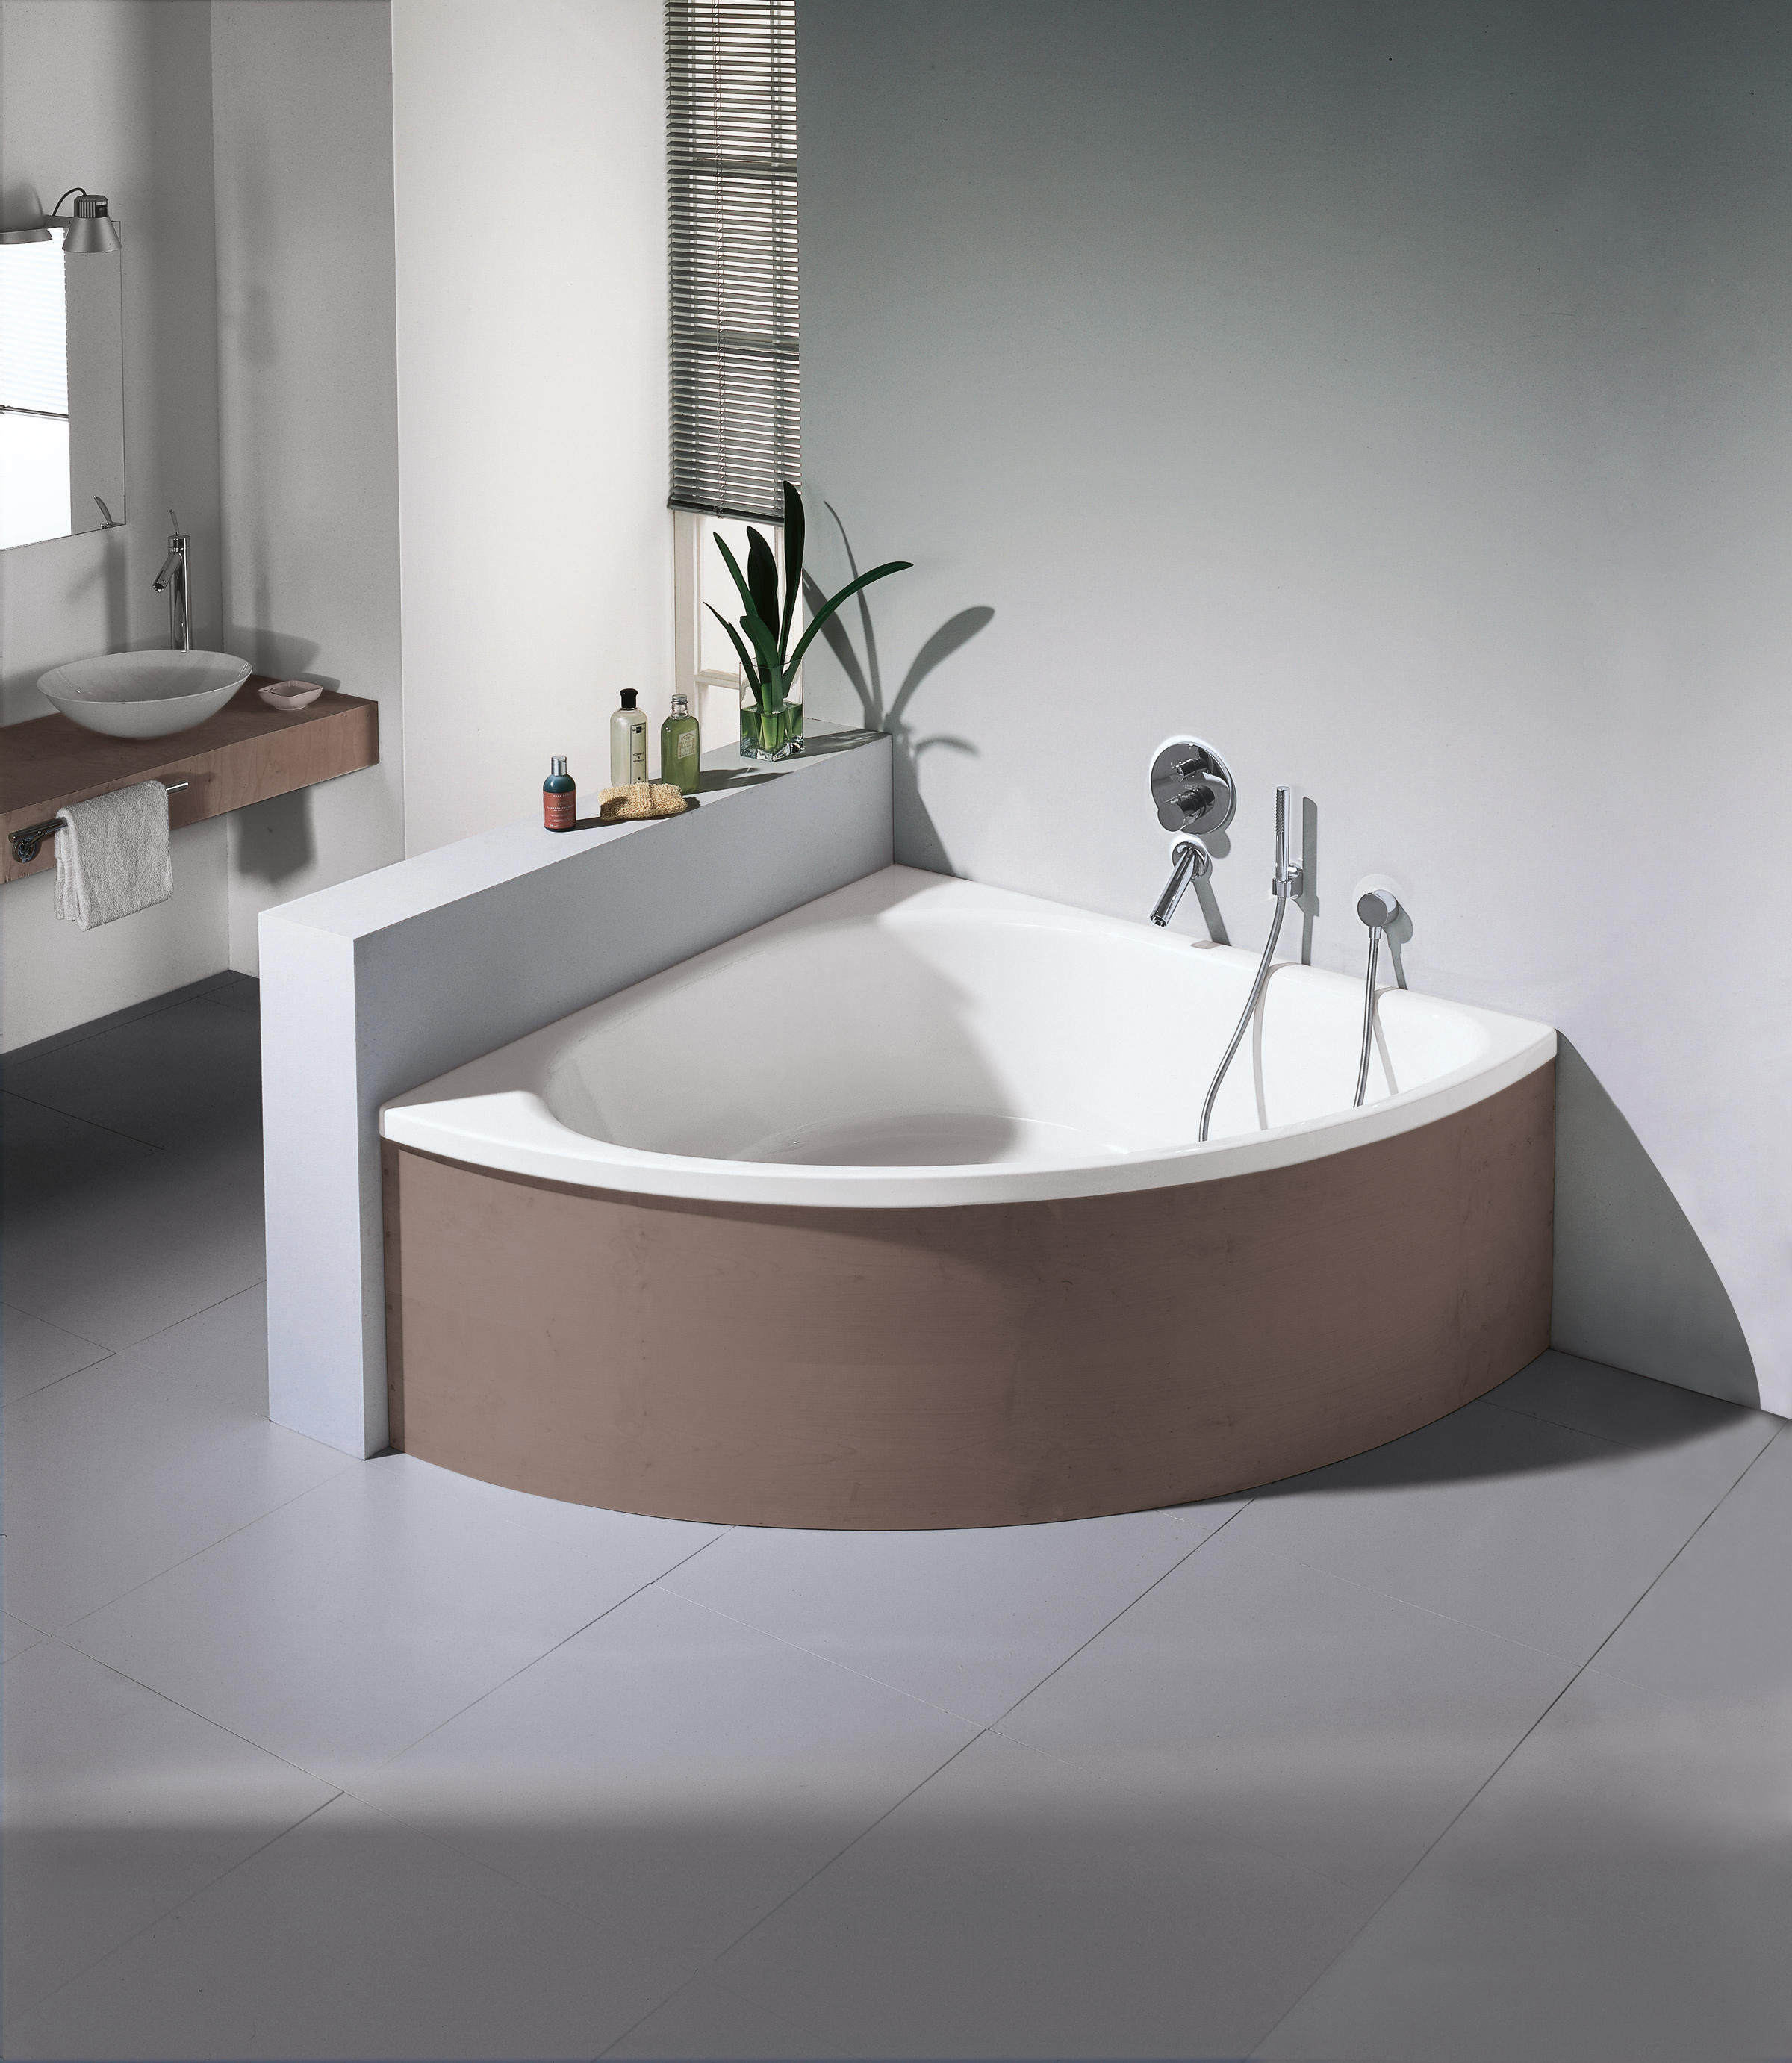 BETTEARCO - Bathtubs from Bette | Architonic